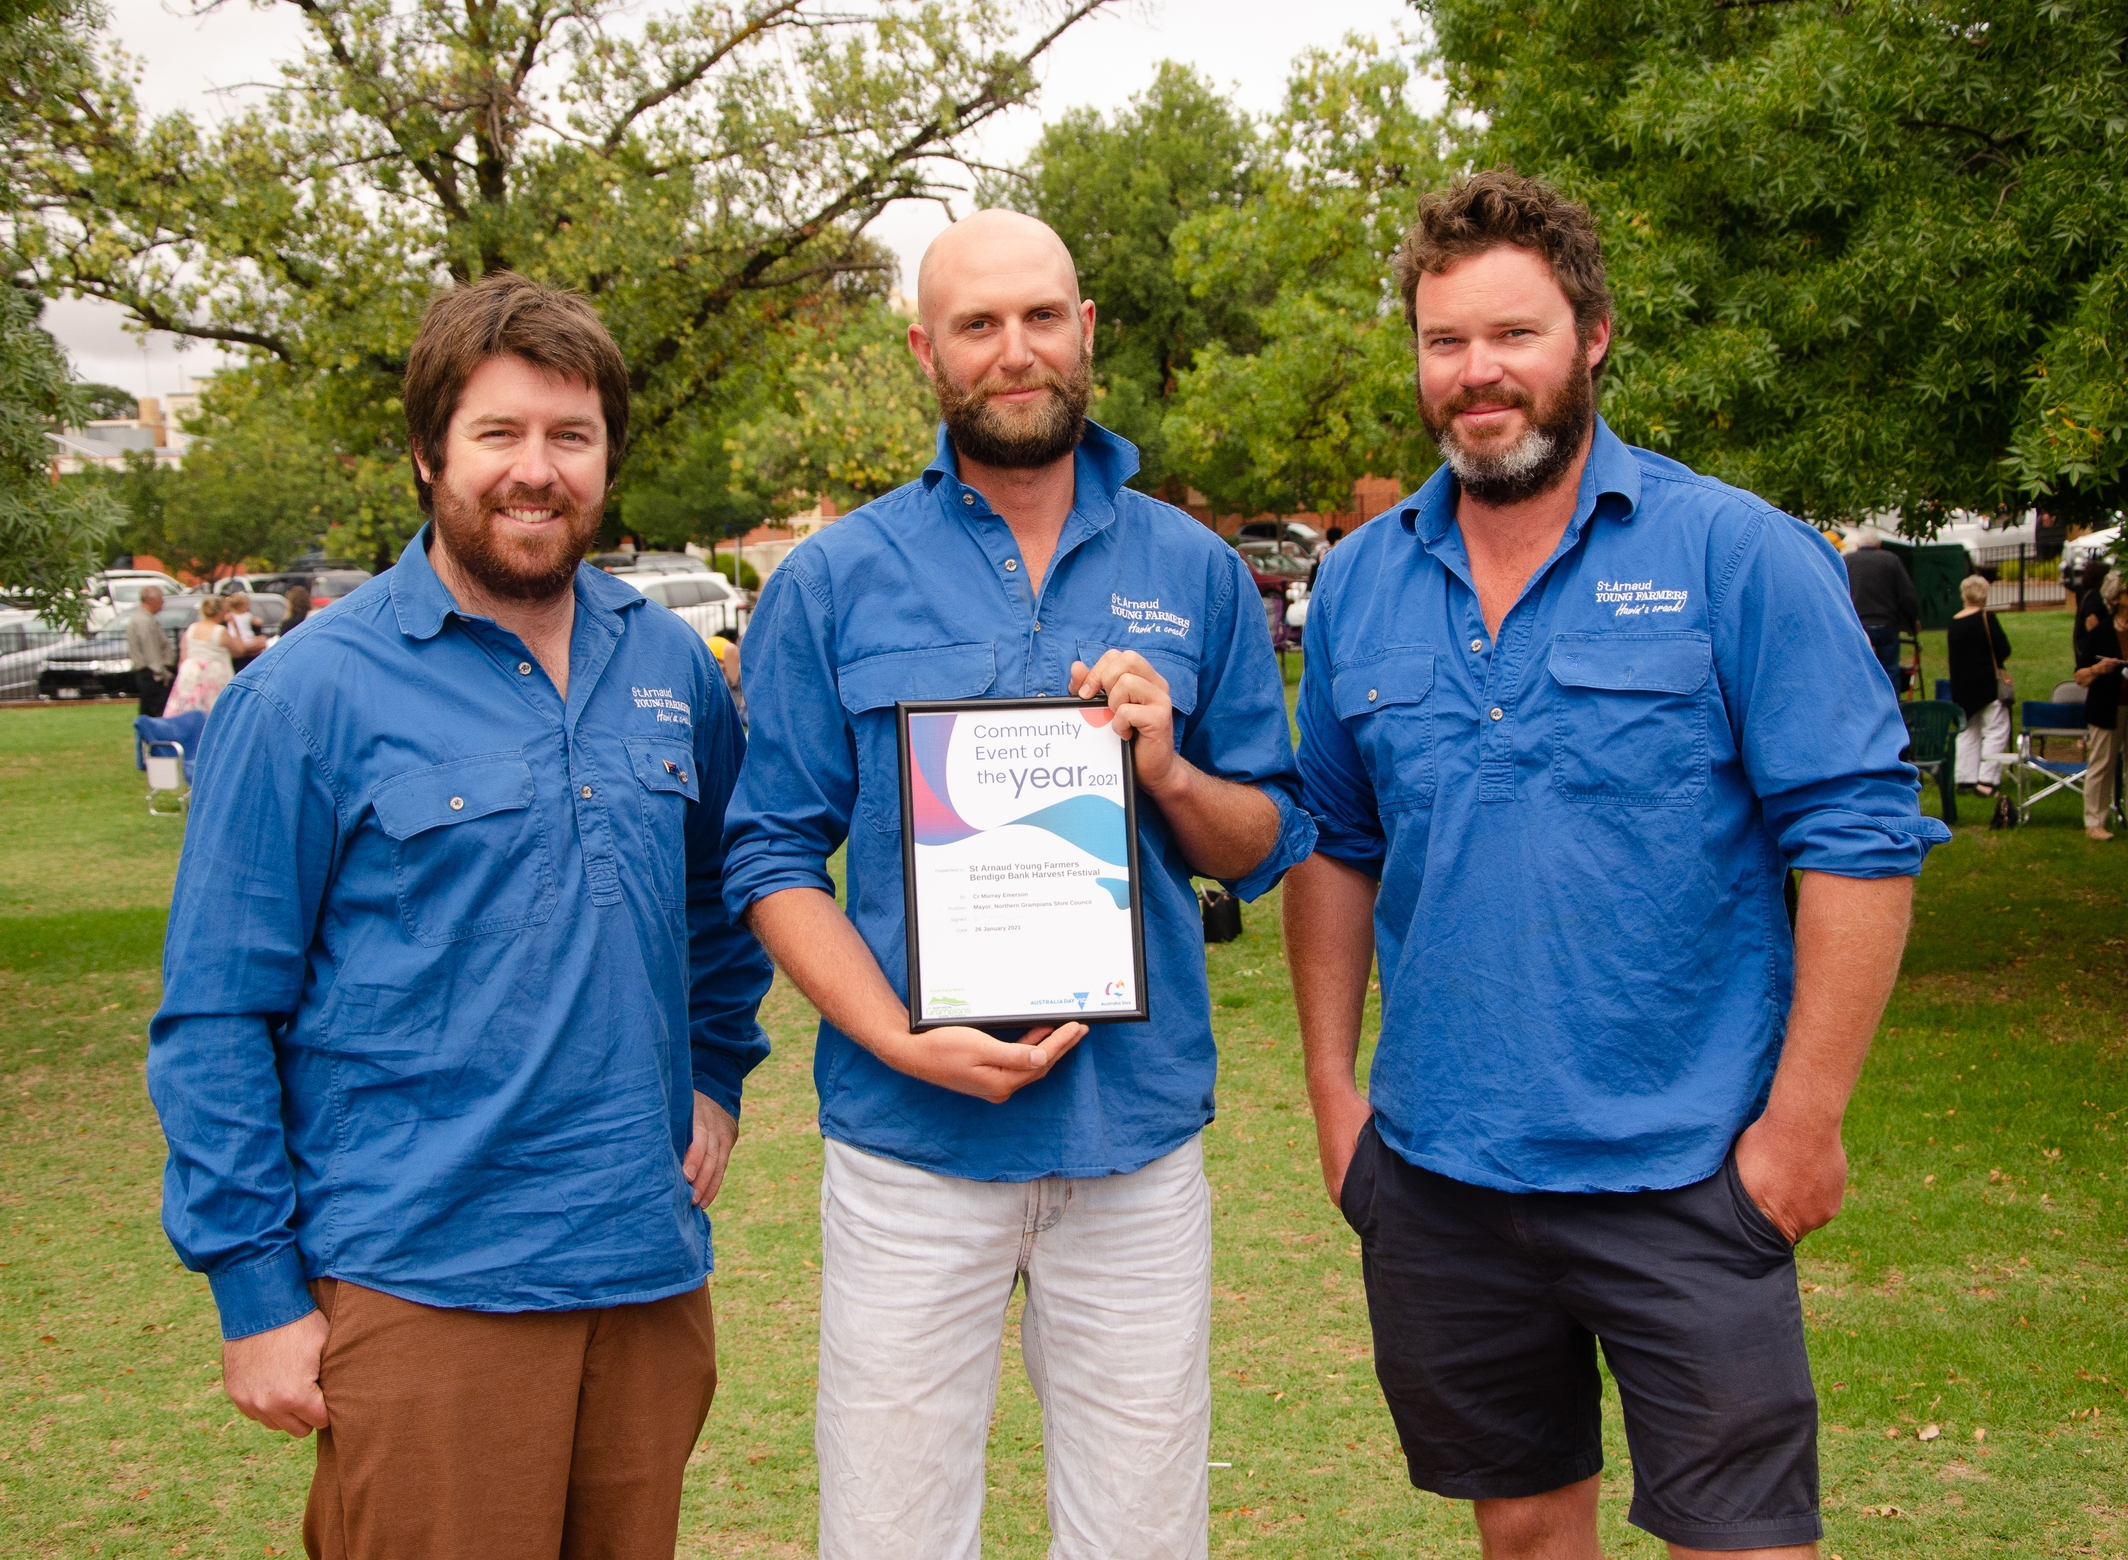 St Arnaud Community Event of the Year-St Arnaud Young Farmers